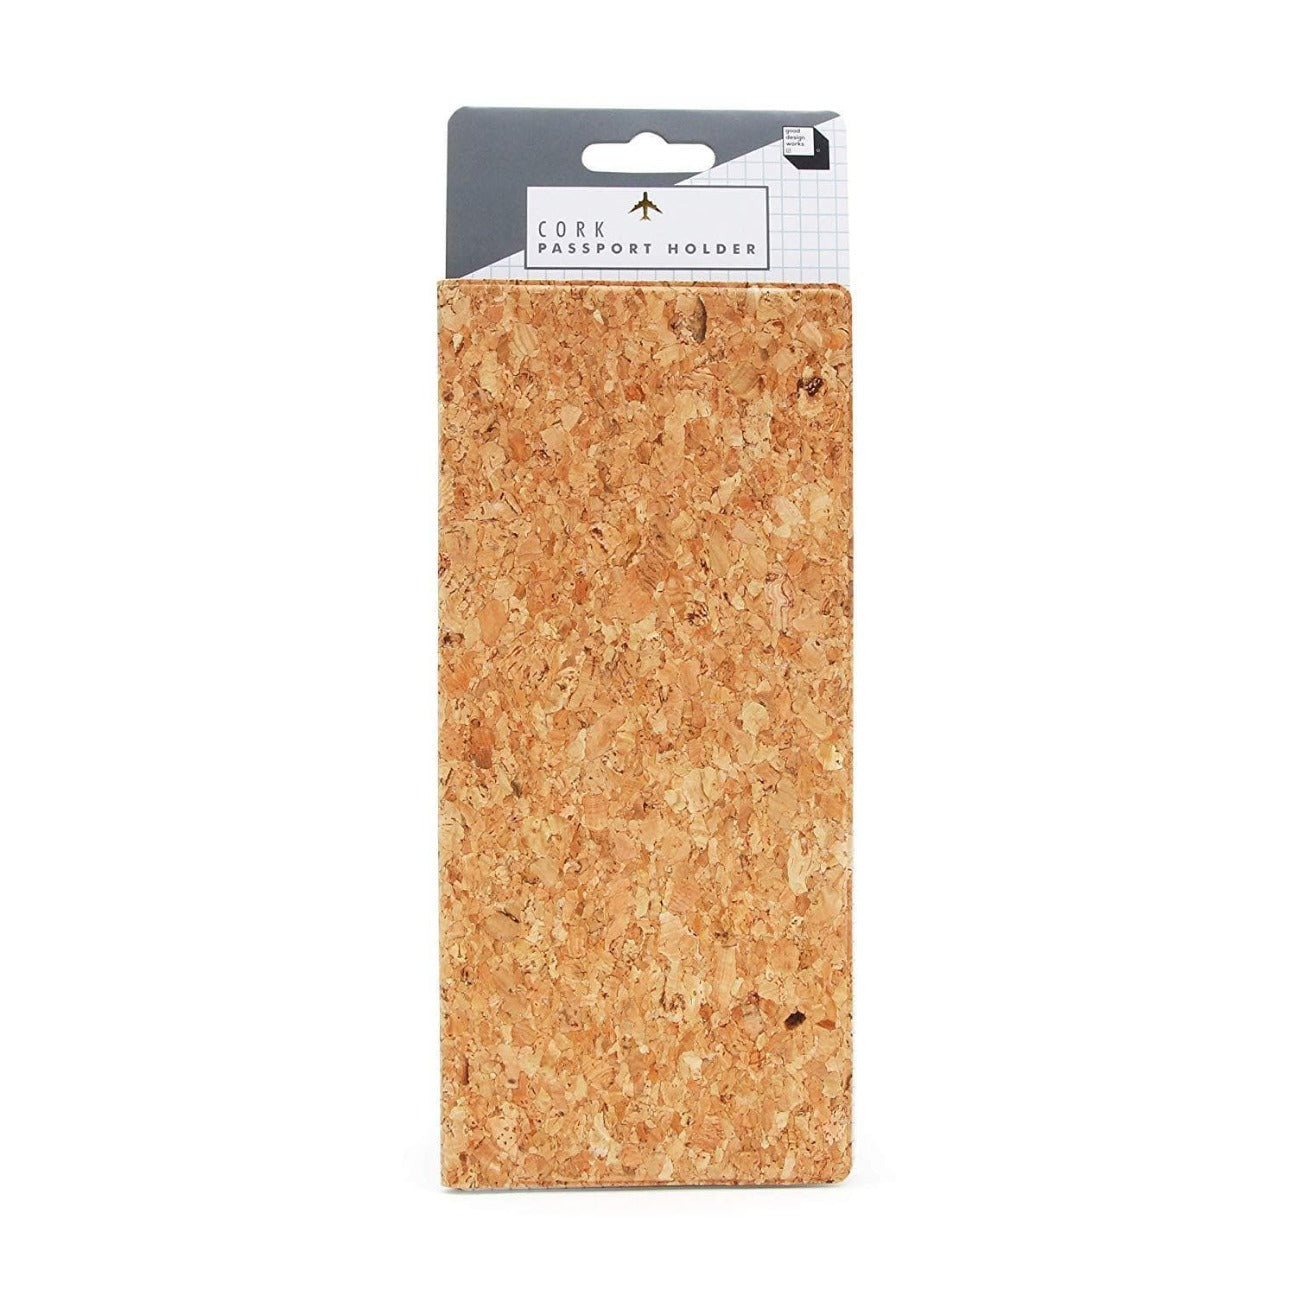 Cork Passport Holder - LARGE - Naturally Anti-Microbial Hypoallergenic Sustainable Eco-Friendly Cork